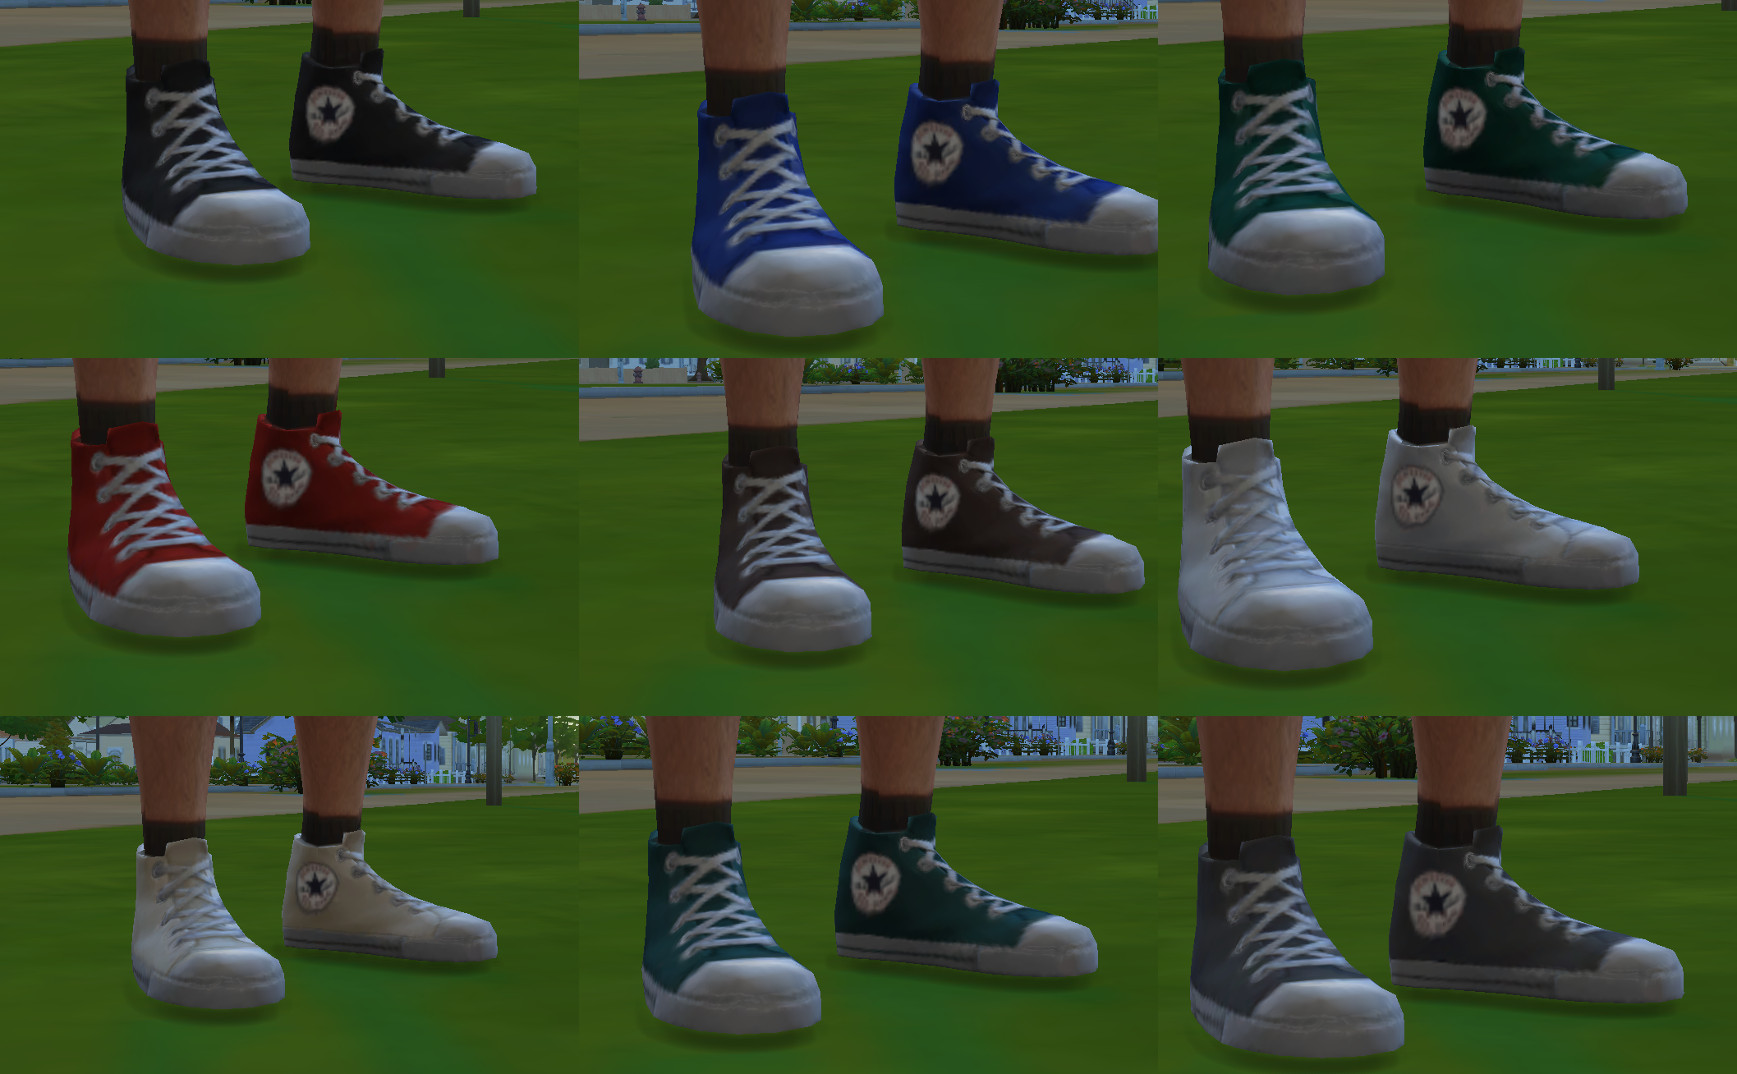 Mod The Sims Converse Shoes Maxis Shoes Re Textured